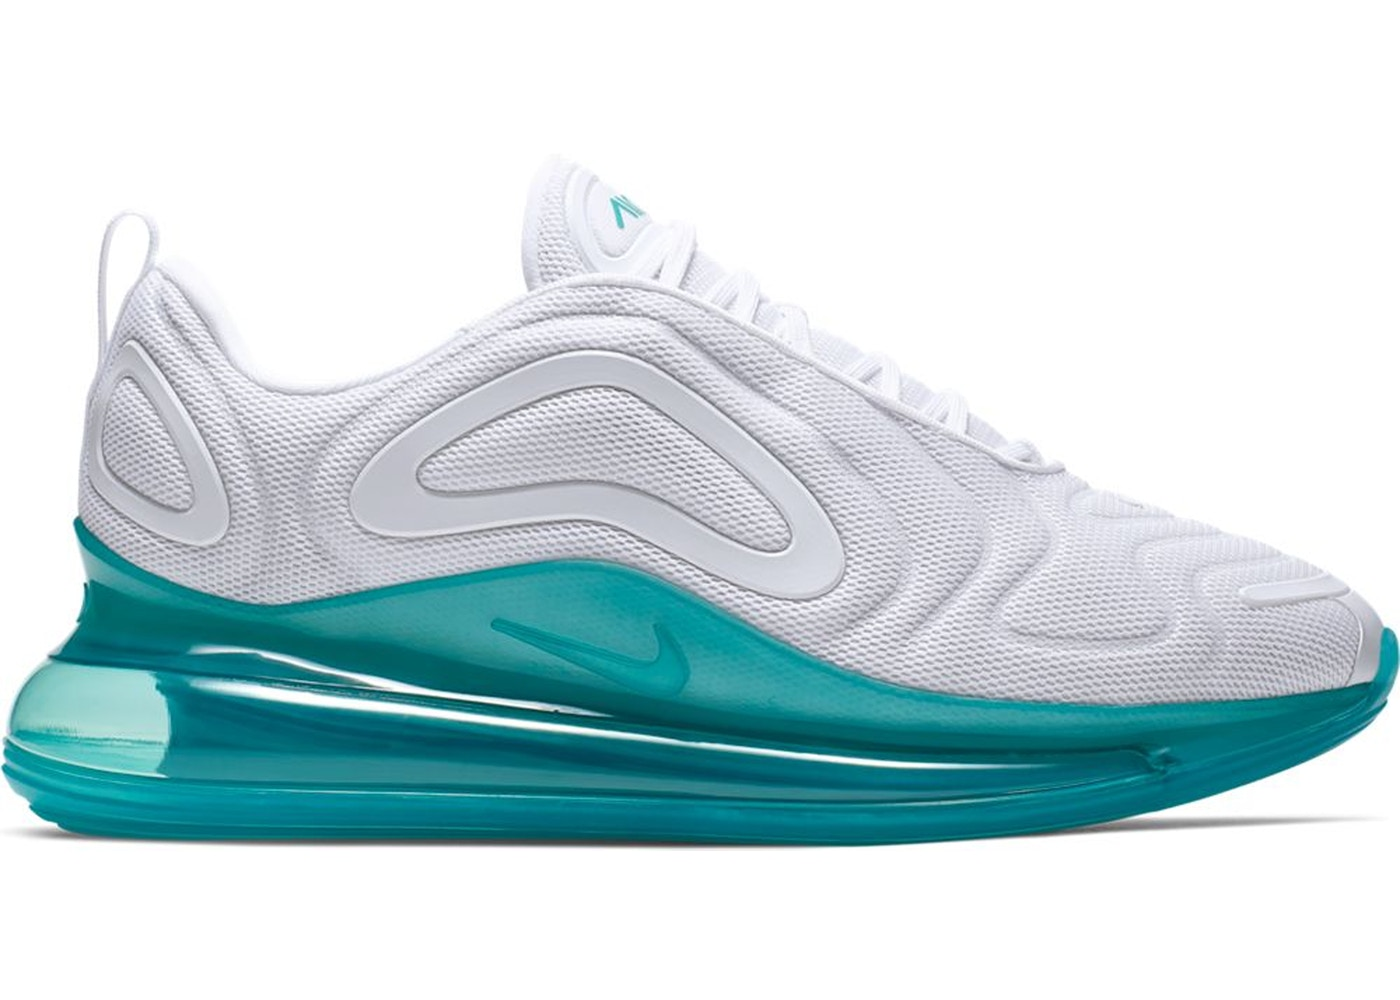 reputable site f12ce 5c94d Nike Air Max Other Shoes - Release Date